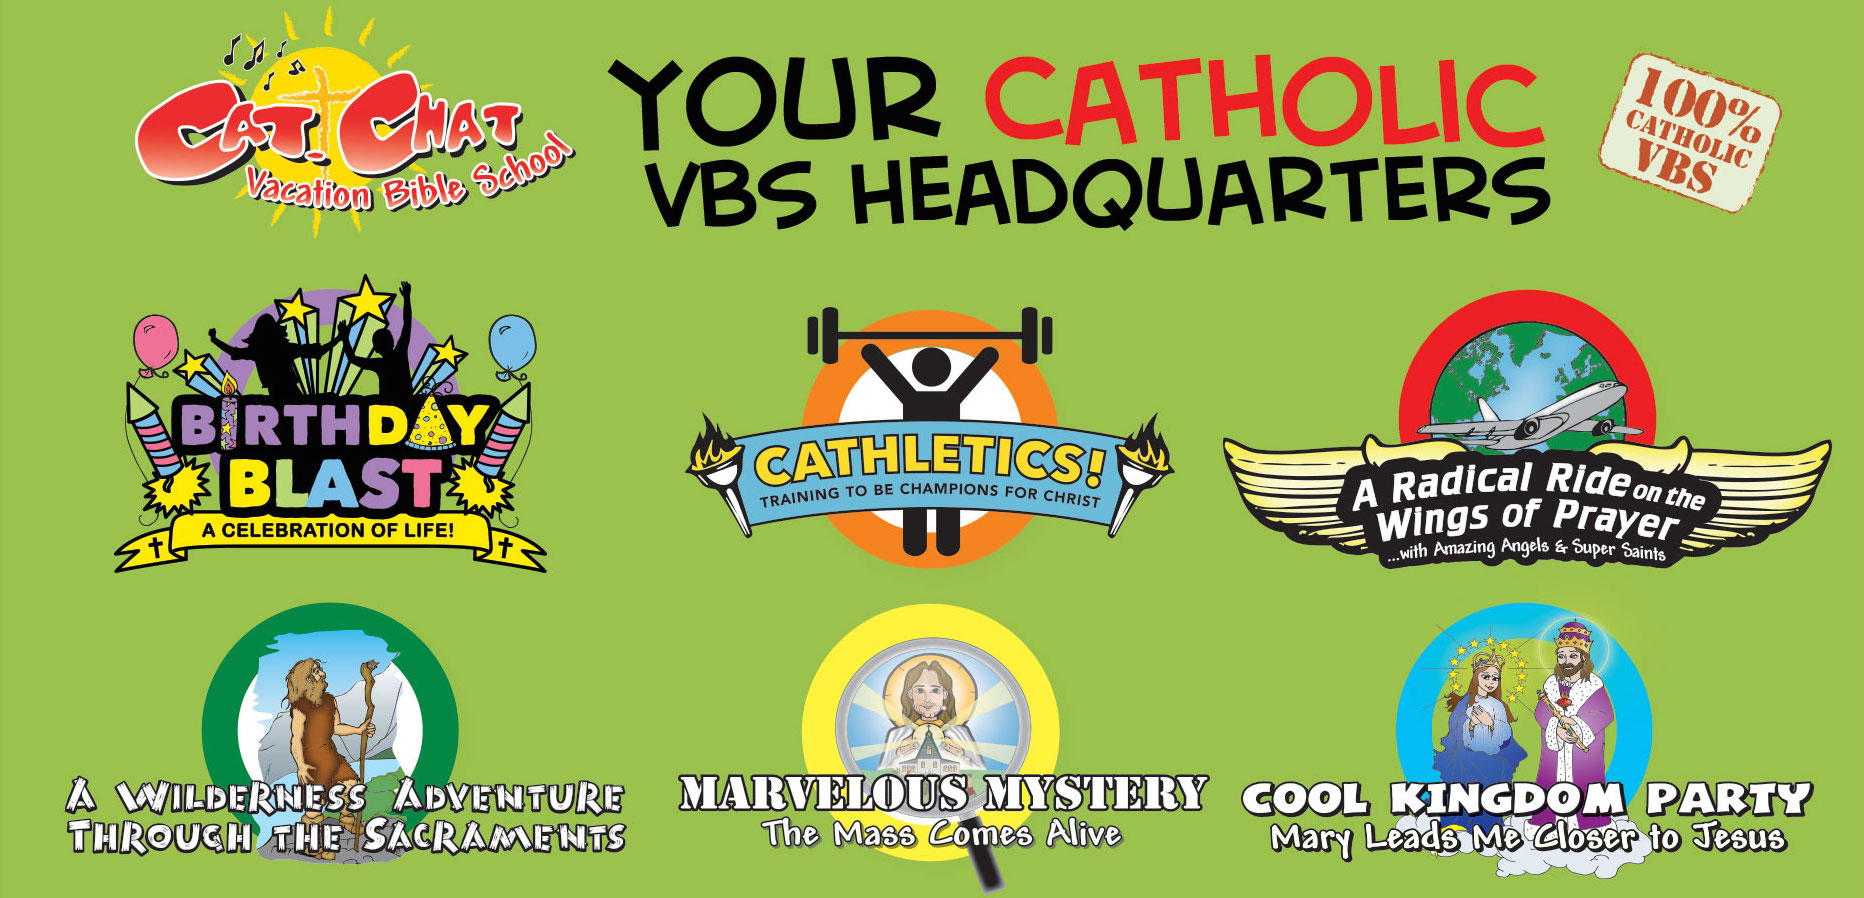 VBS Headquarters final